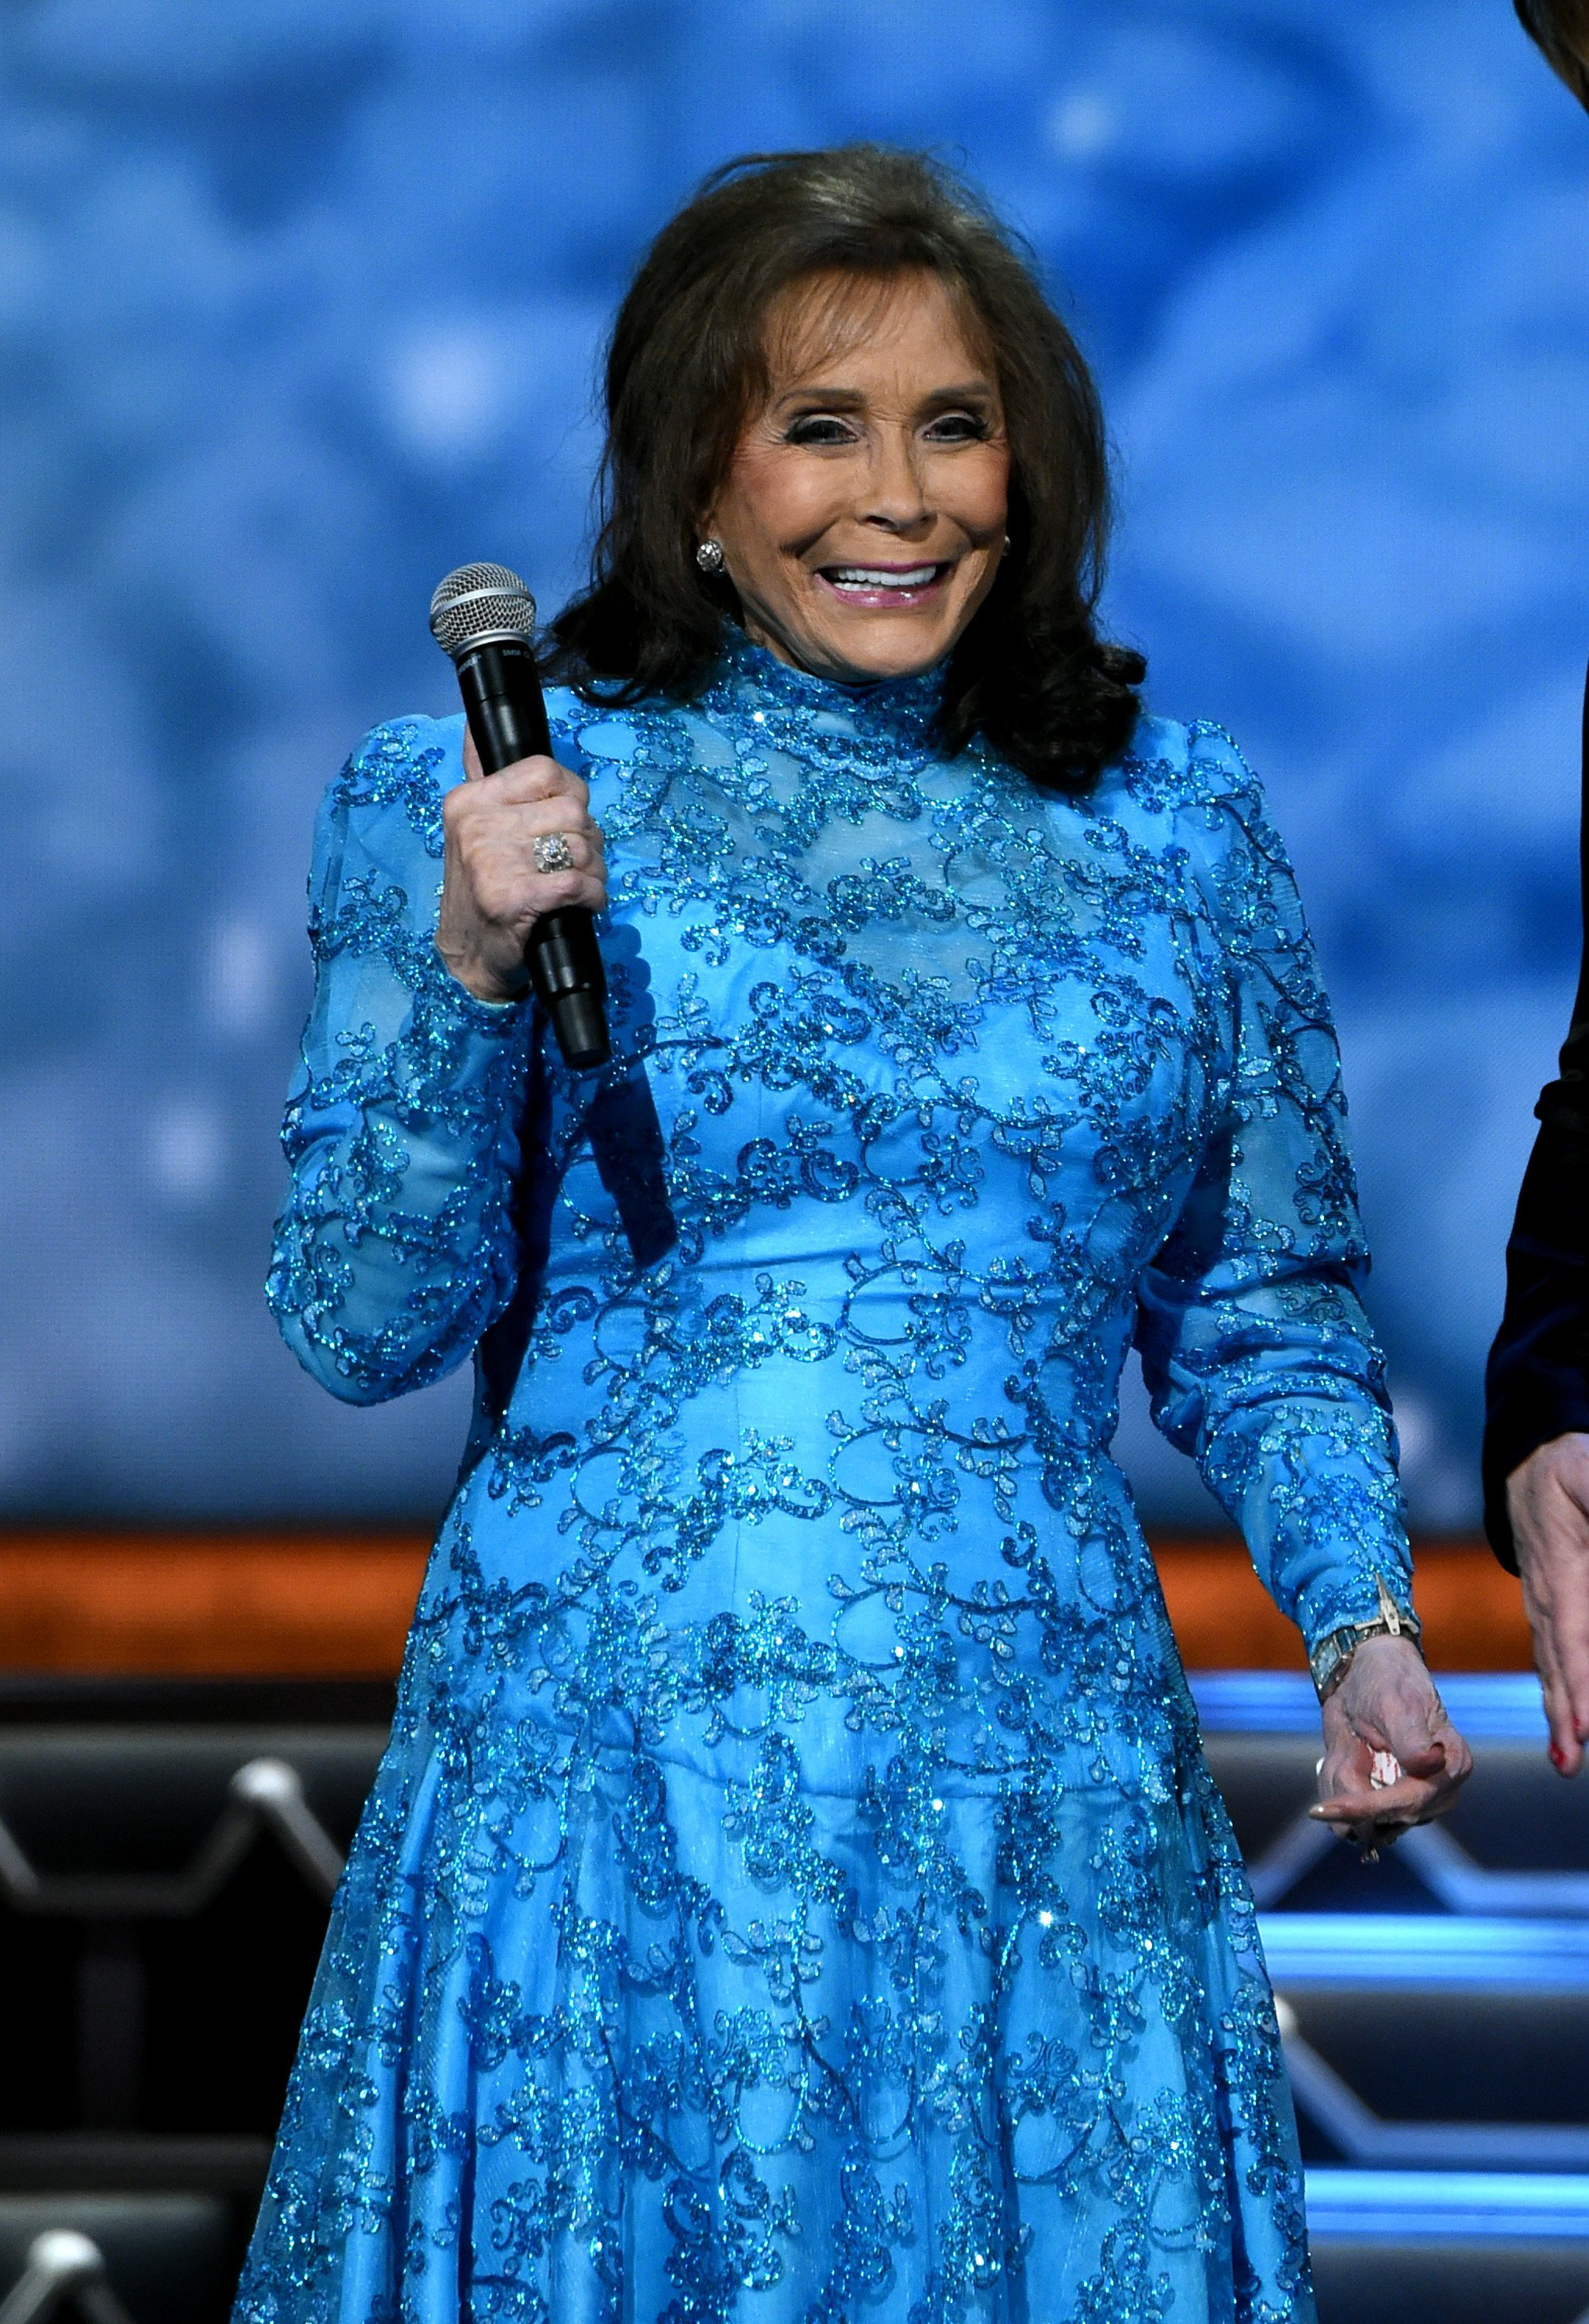 Loretta Lynn on November 8, 2016 in Nashville, Tennessee | Source: Getty Images/Global Images Ukraine